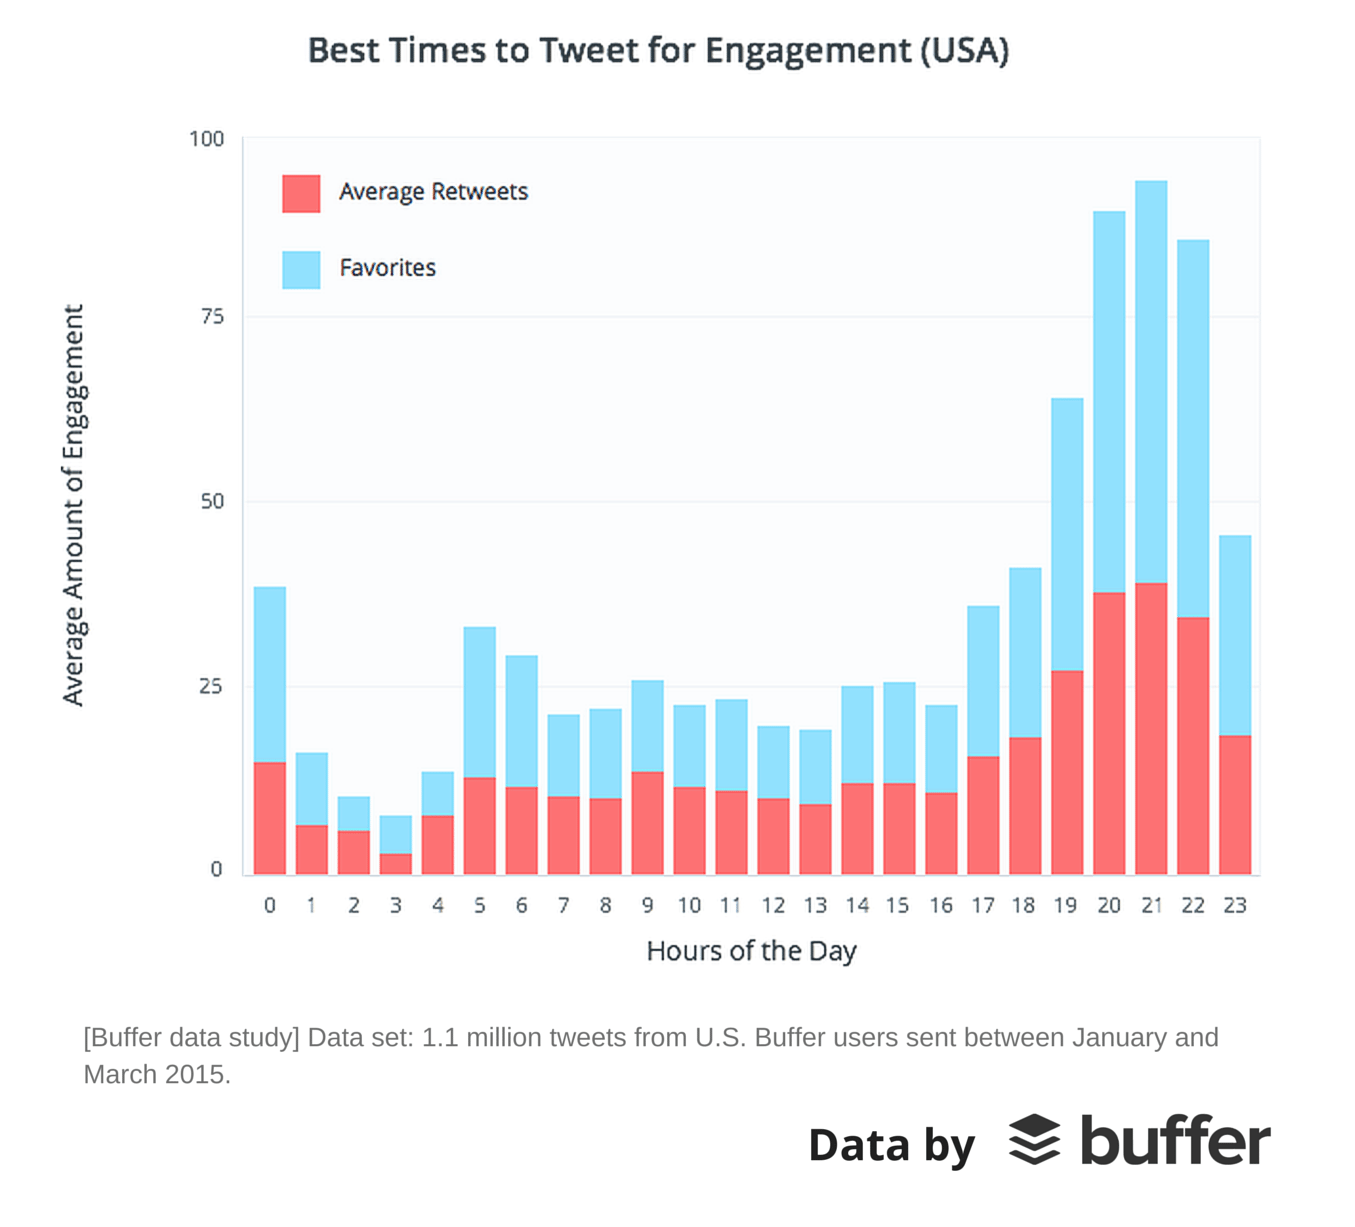 Best Times to Tweet for Engagement USA